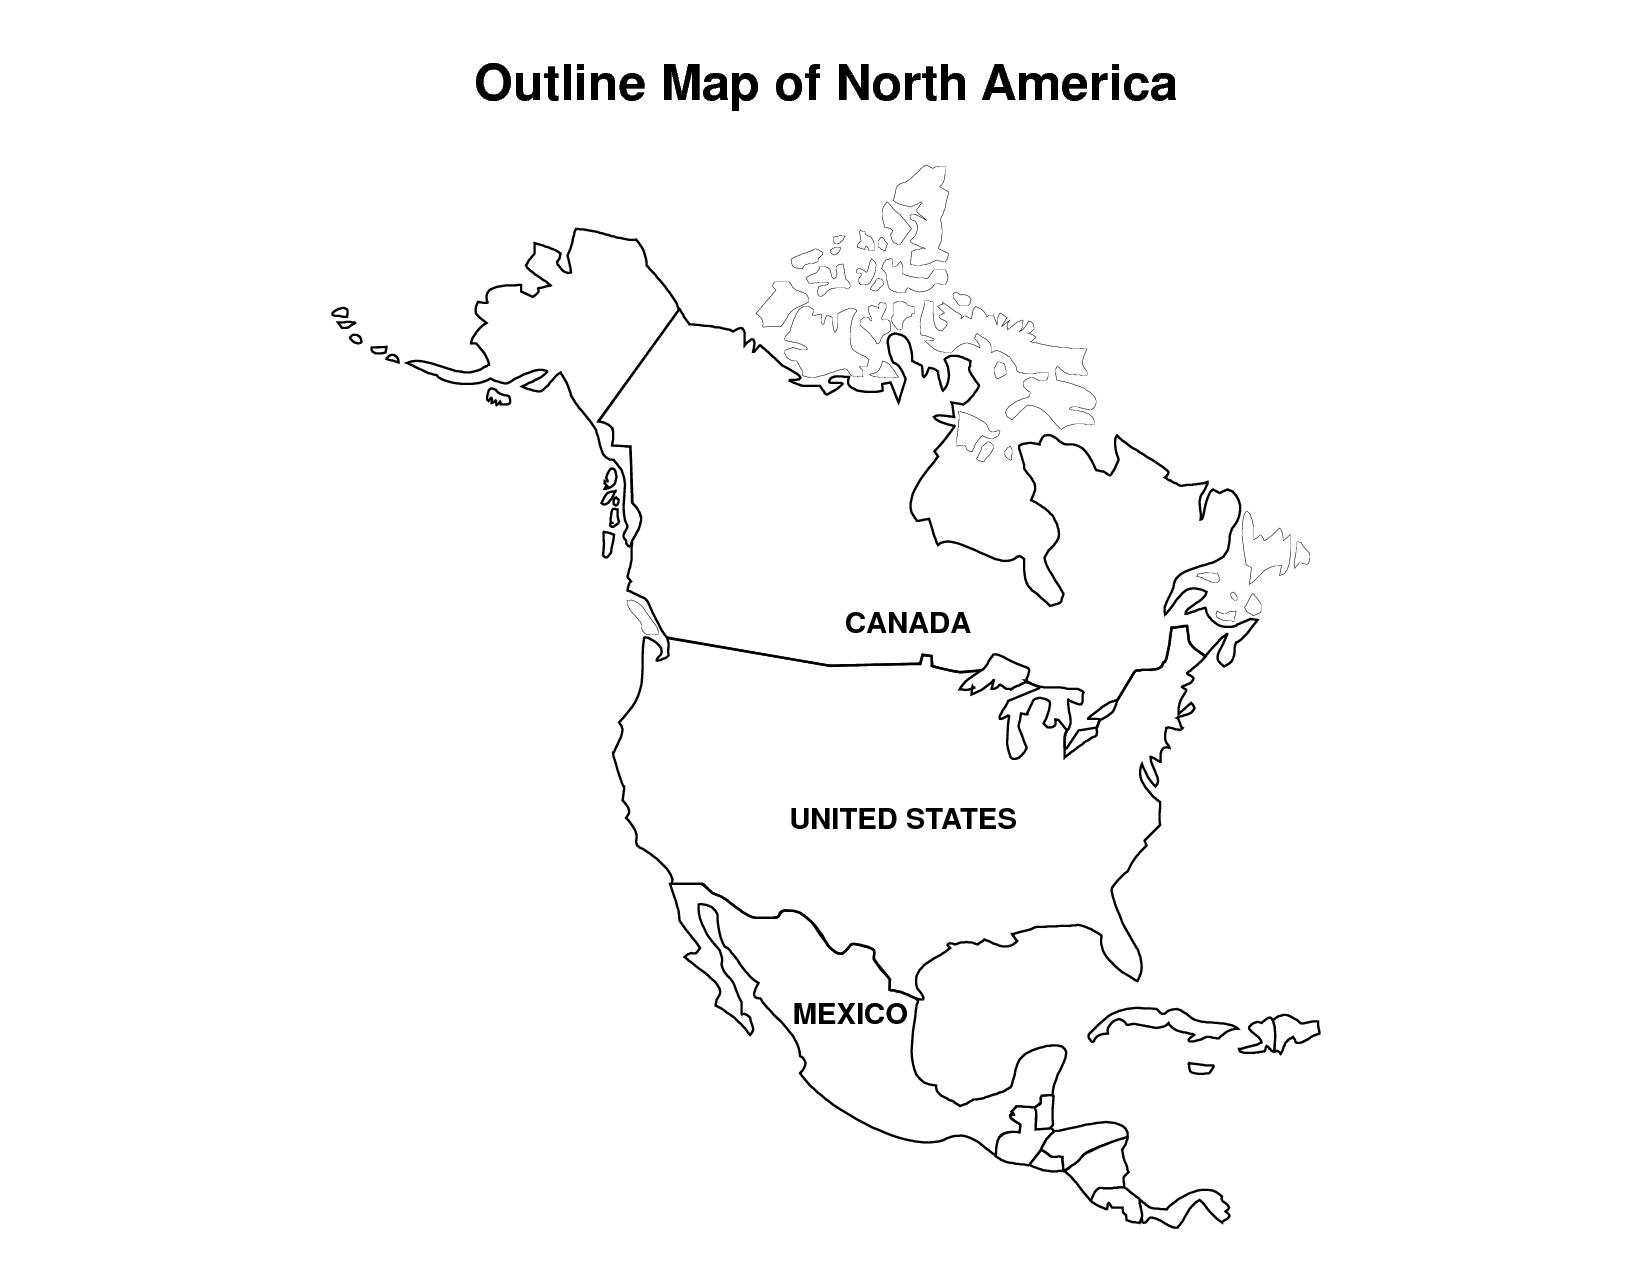 north america coloring map - Roberto.mattni.co